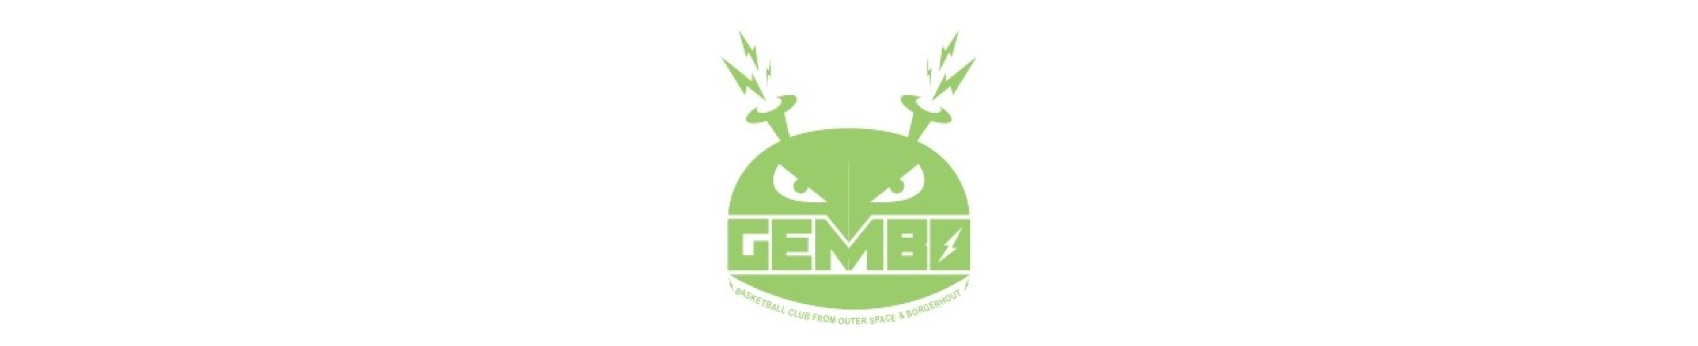 GEMBO - BASKETBALL CLUB FROM OUTER SPACE & BORGERHOUT